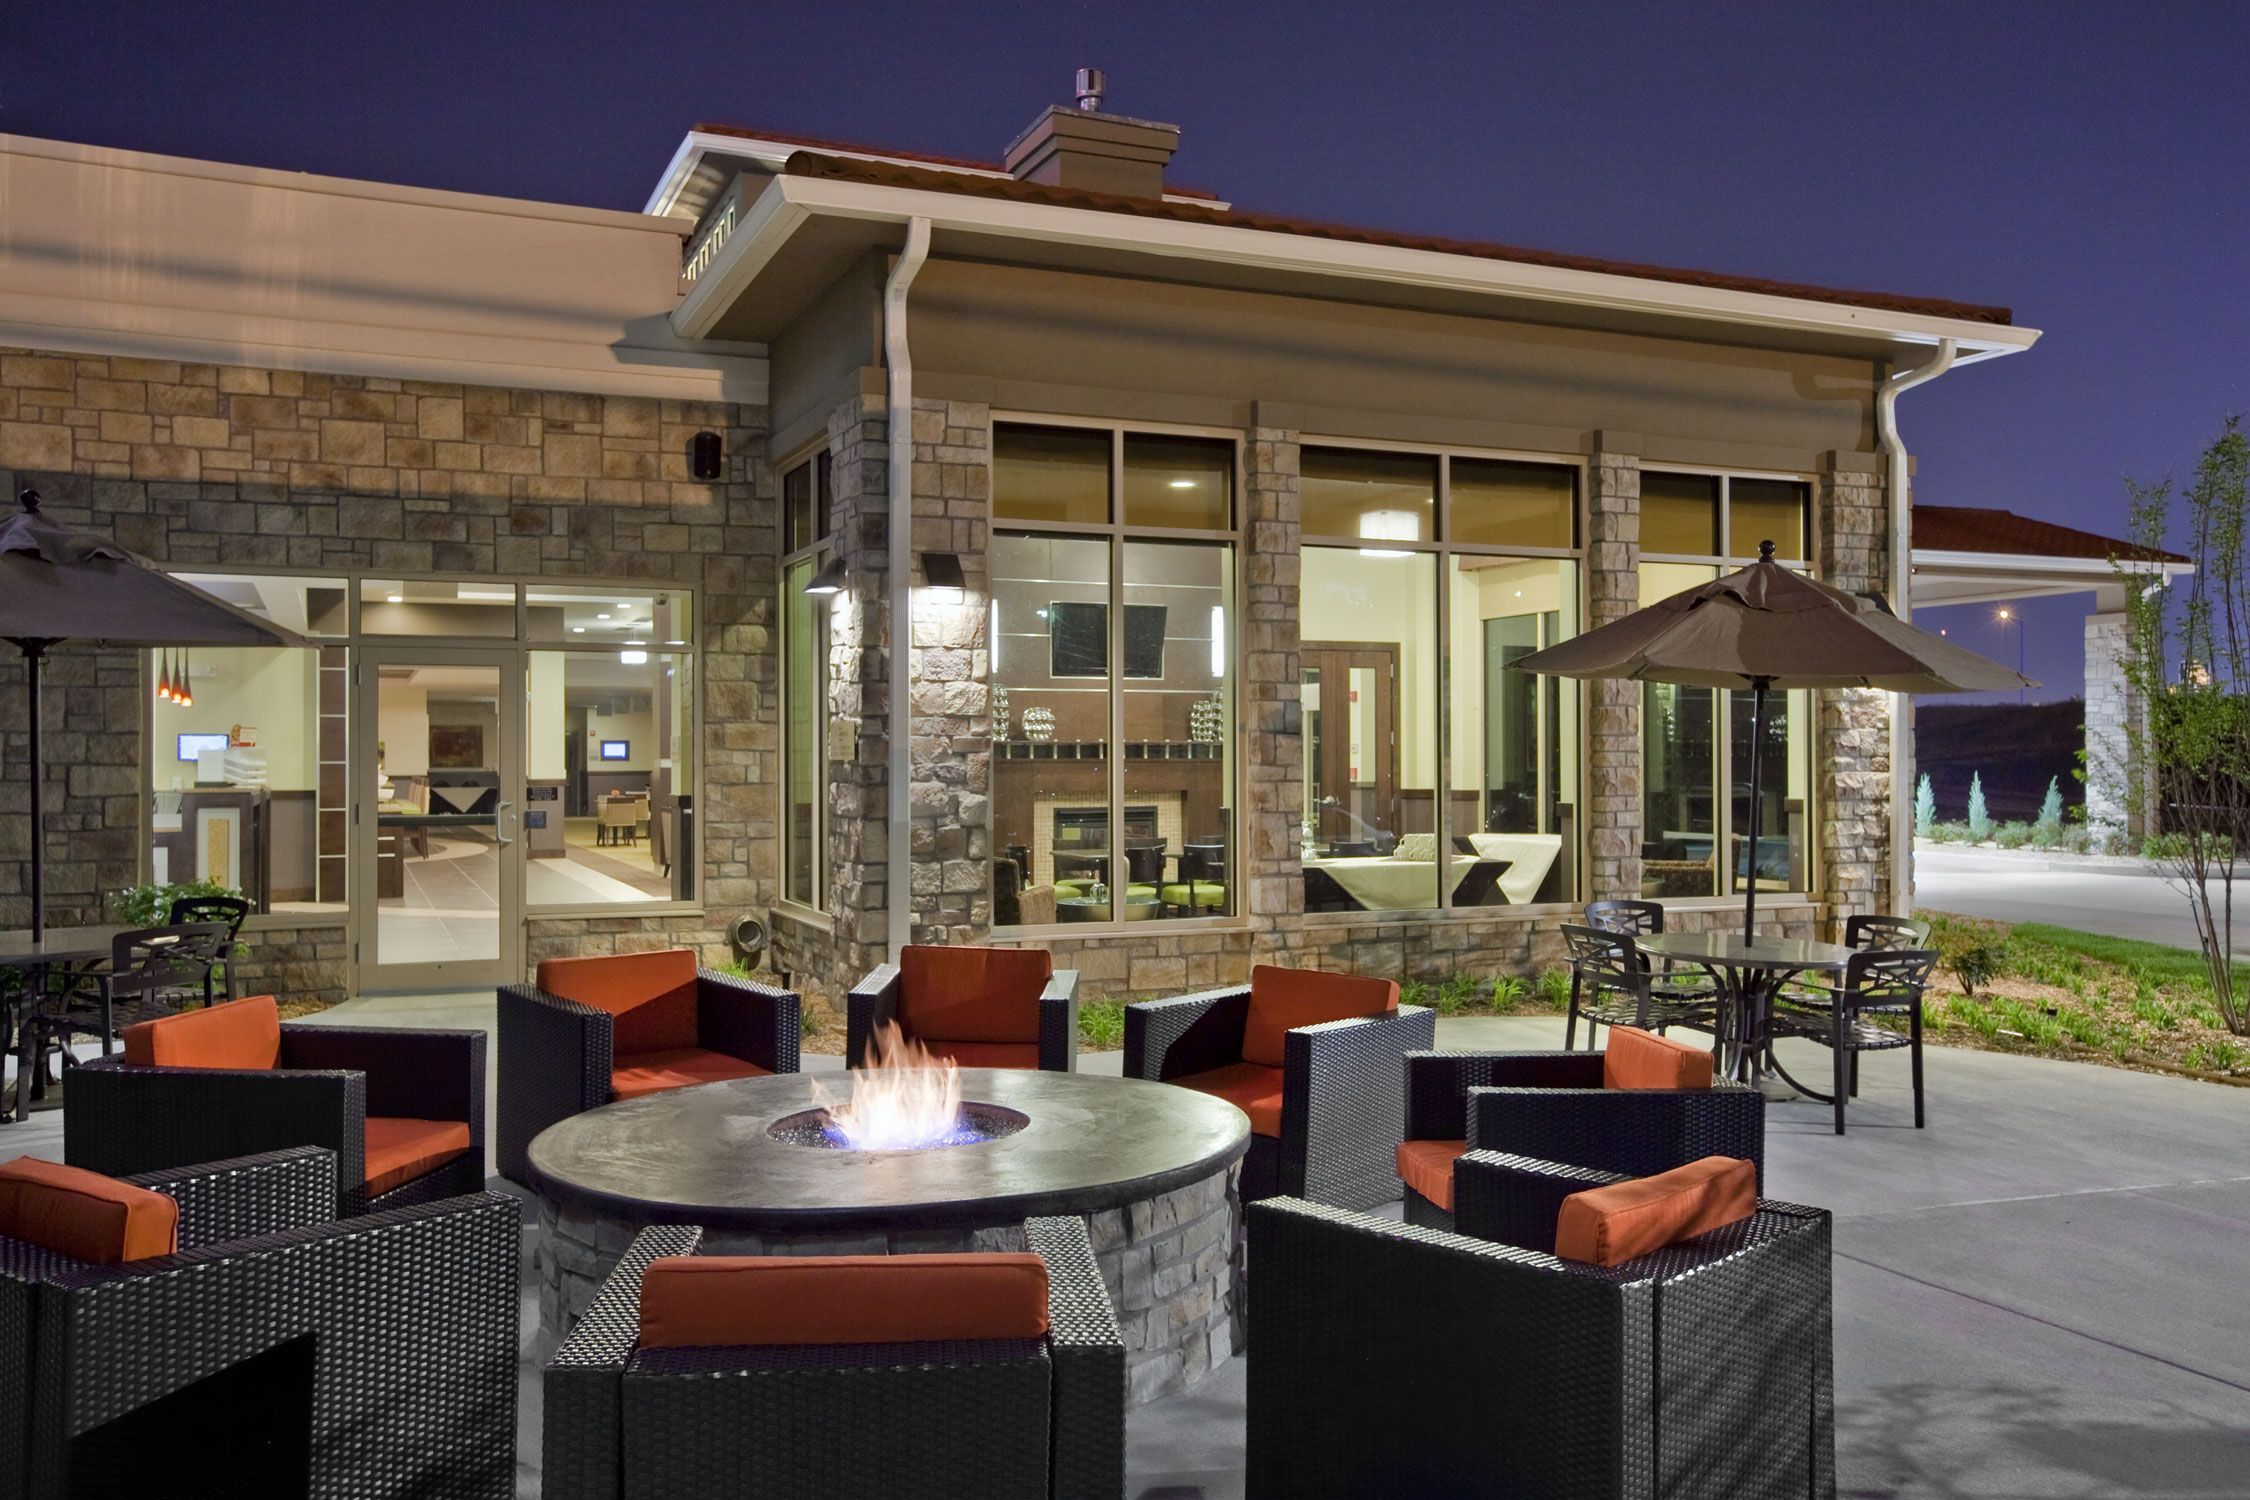 Cozy Up To Our Warm Fire Pit On These Nice Spring Nights Don T